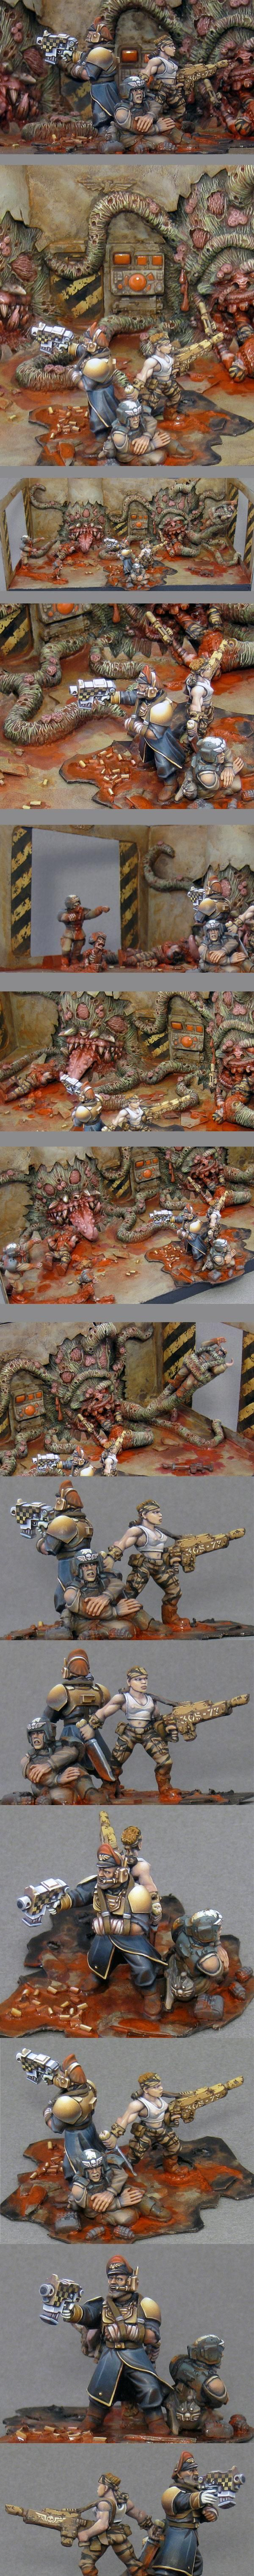 Blood, Catachan, Chaos, Commissar, Conscript, Daemons, Diorama, Imperial Guard, Last Stand, Massacre, Nurgle, Possessed, Slaughter, Steadfast, Tentacles, Zombie